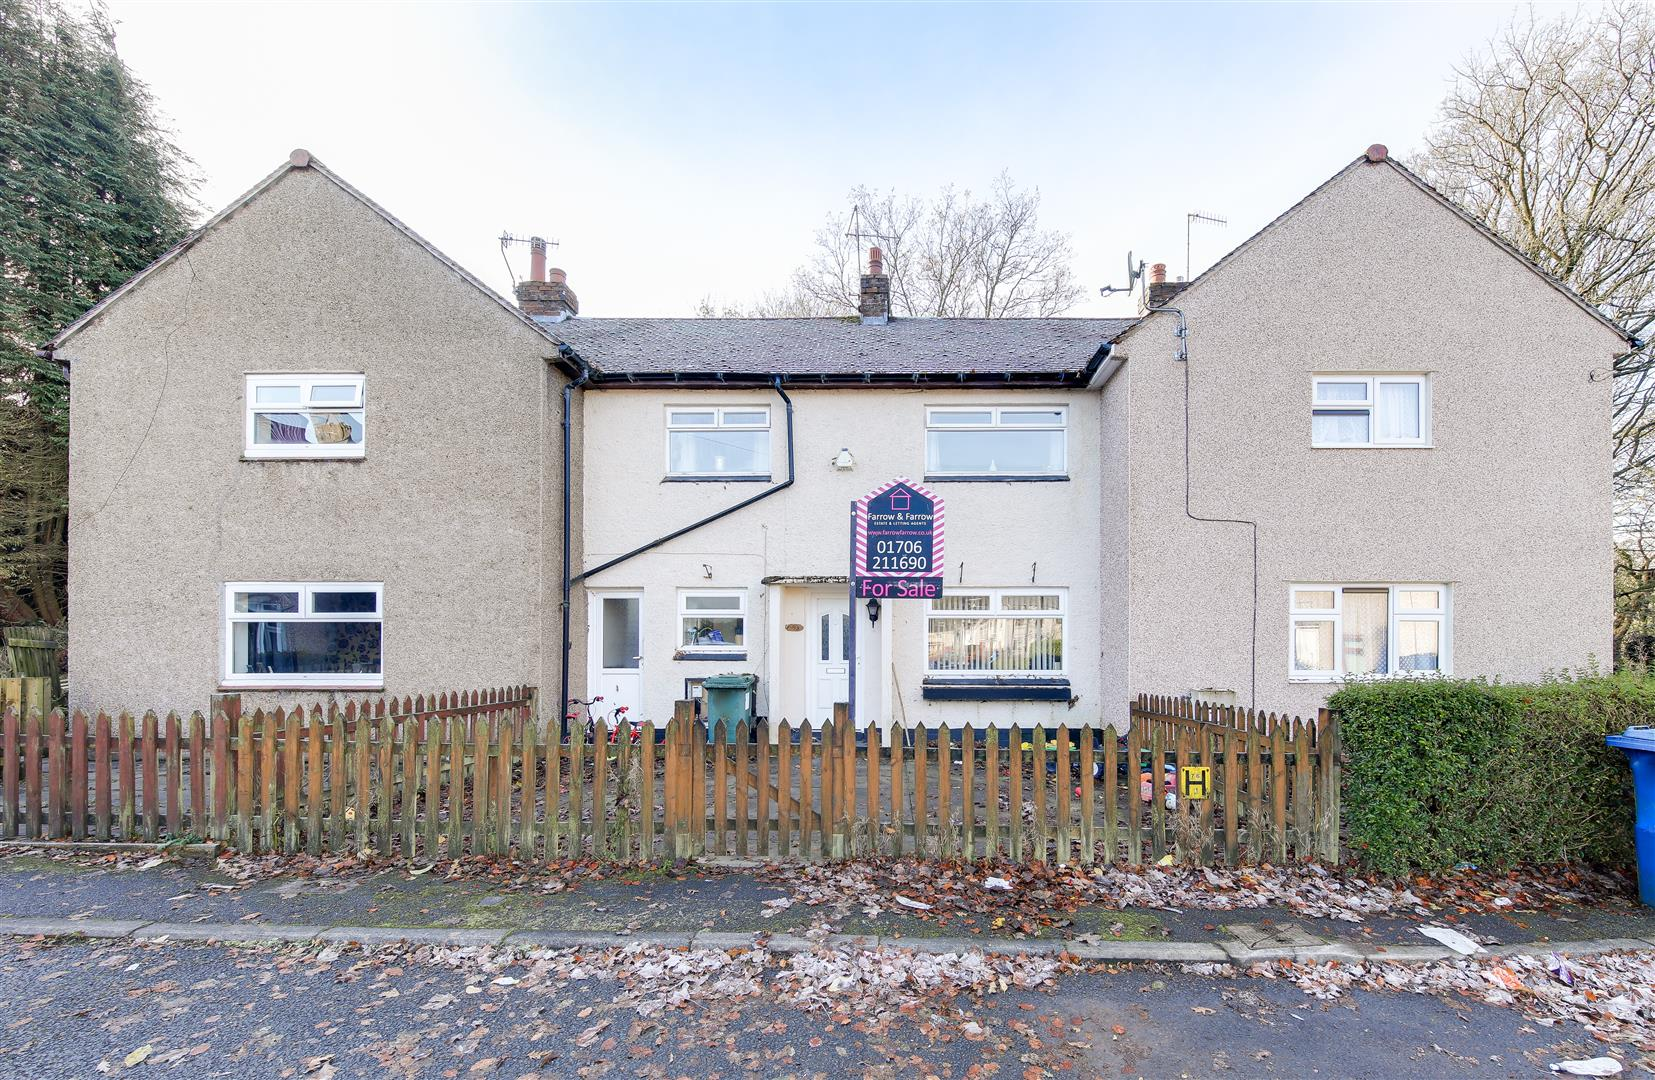 2 Bedrooms Town House for sale in Woodside Crescent, Newchurch, Rossendale